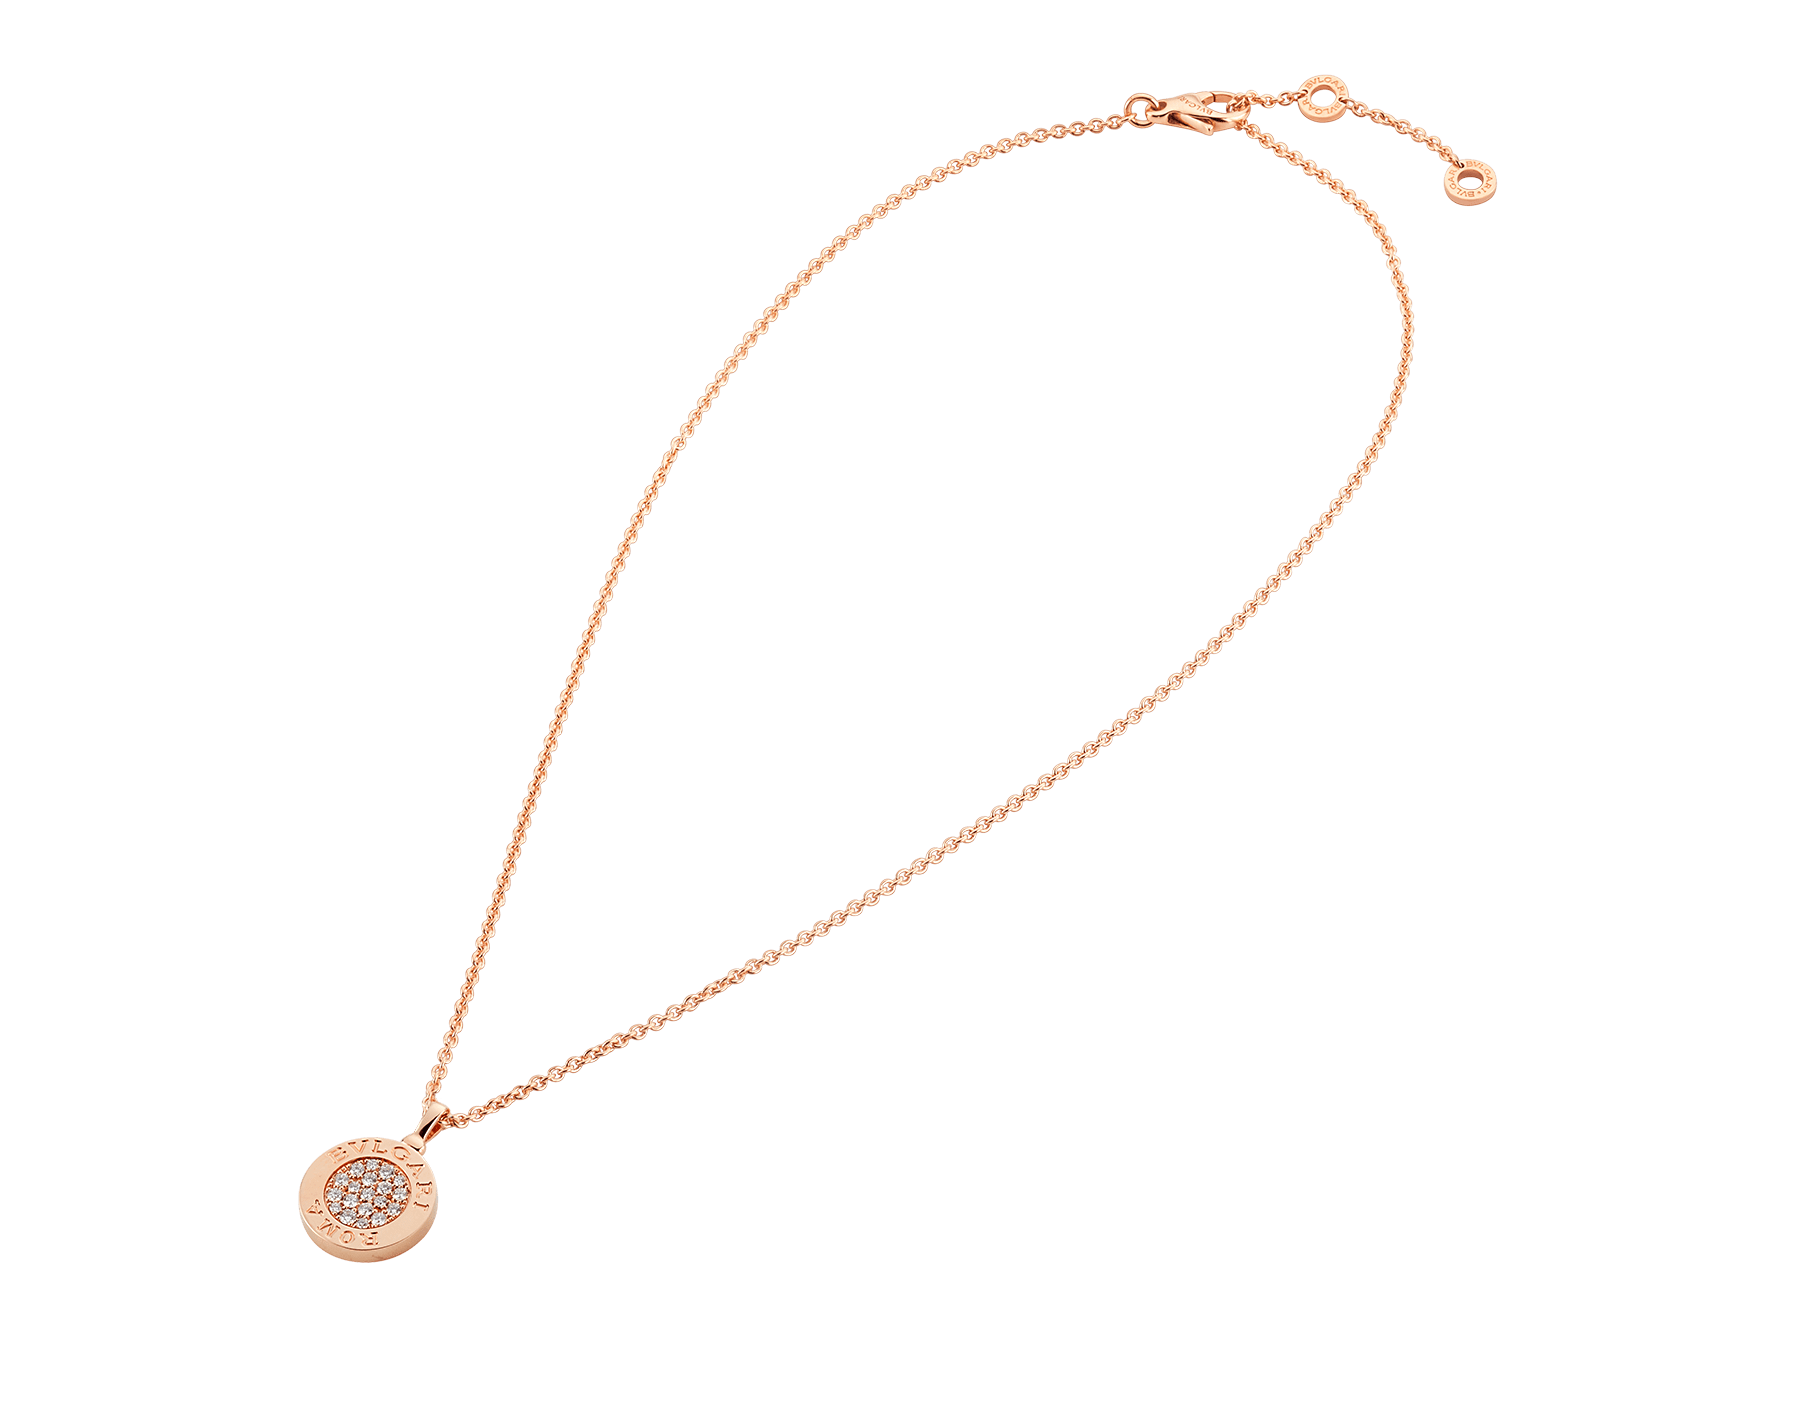 BVLGARI BVLGARI necklace with 18 kt rose gold chain and 18 kt rose gold pendant set with onyx and pavé diamonds 350815 image 2